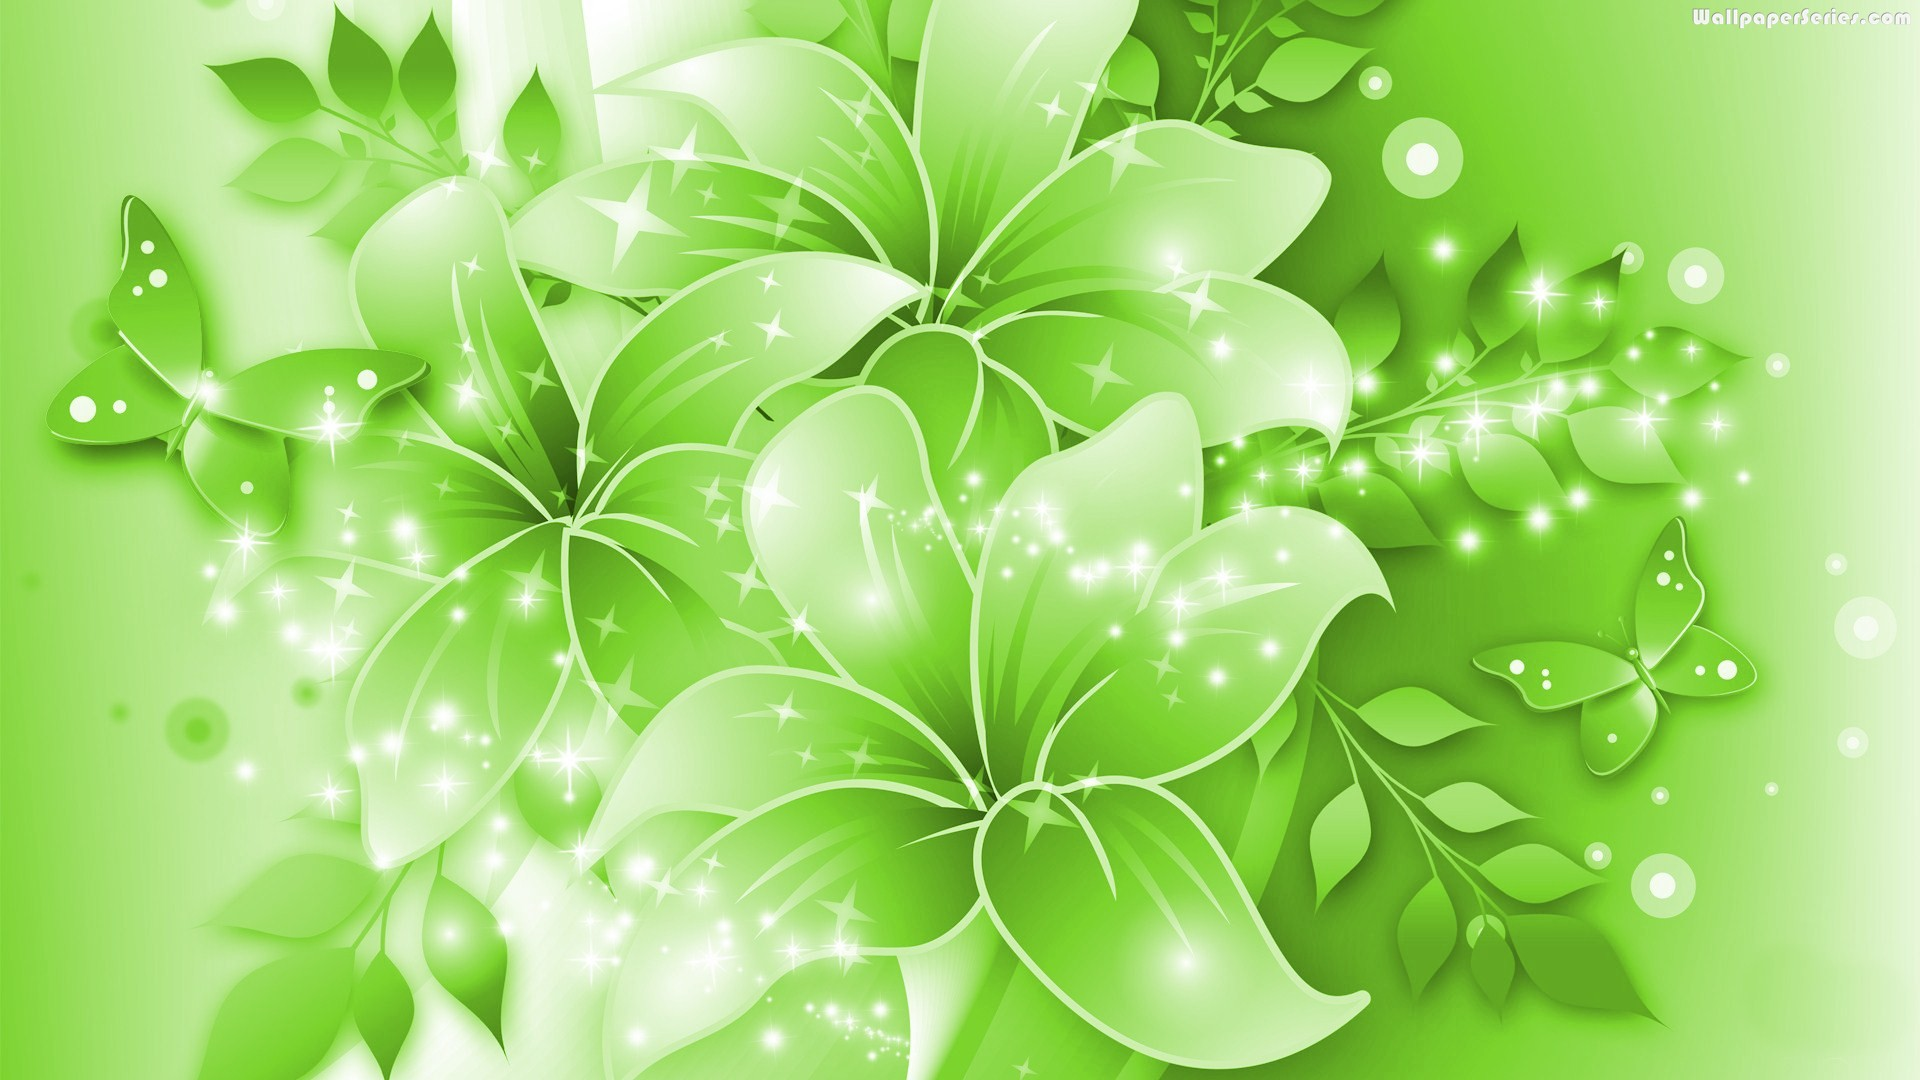 Green Flowers Wallpapers HD Pictures One HD Wallpaper Pictures 1920x1080